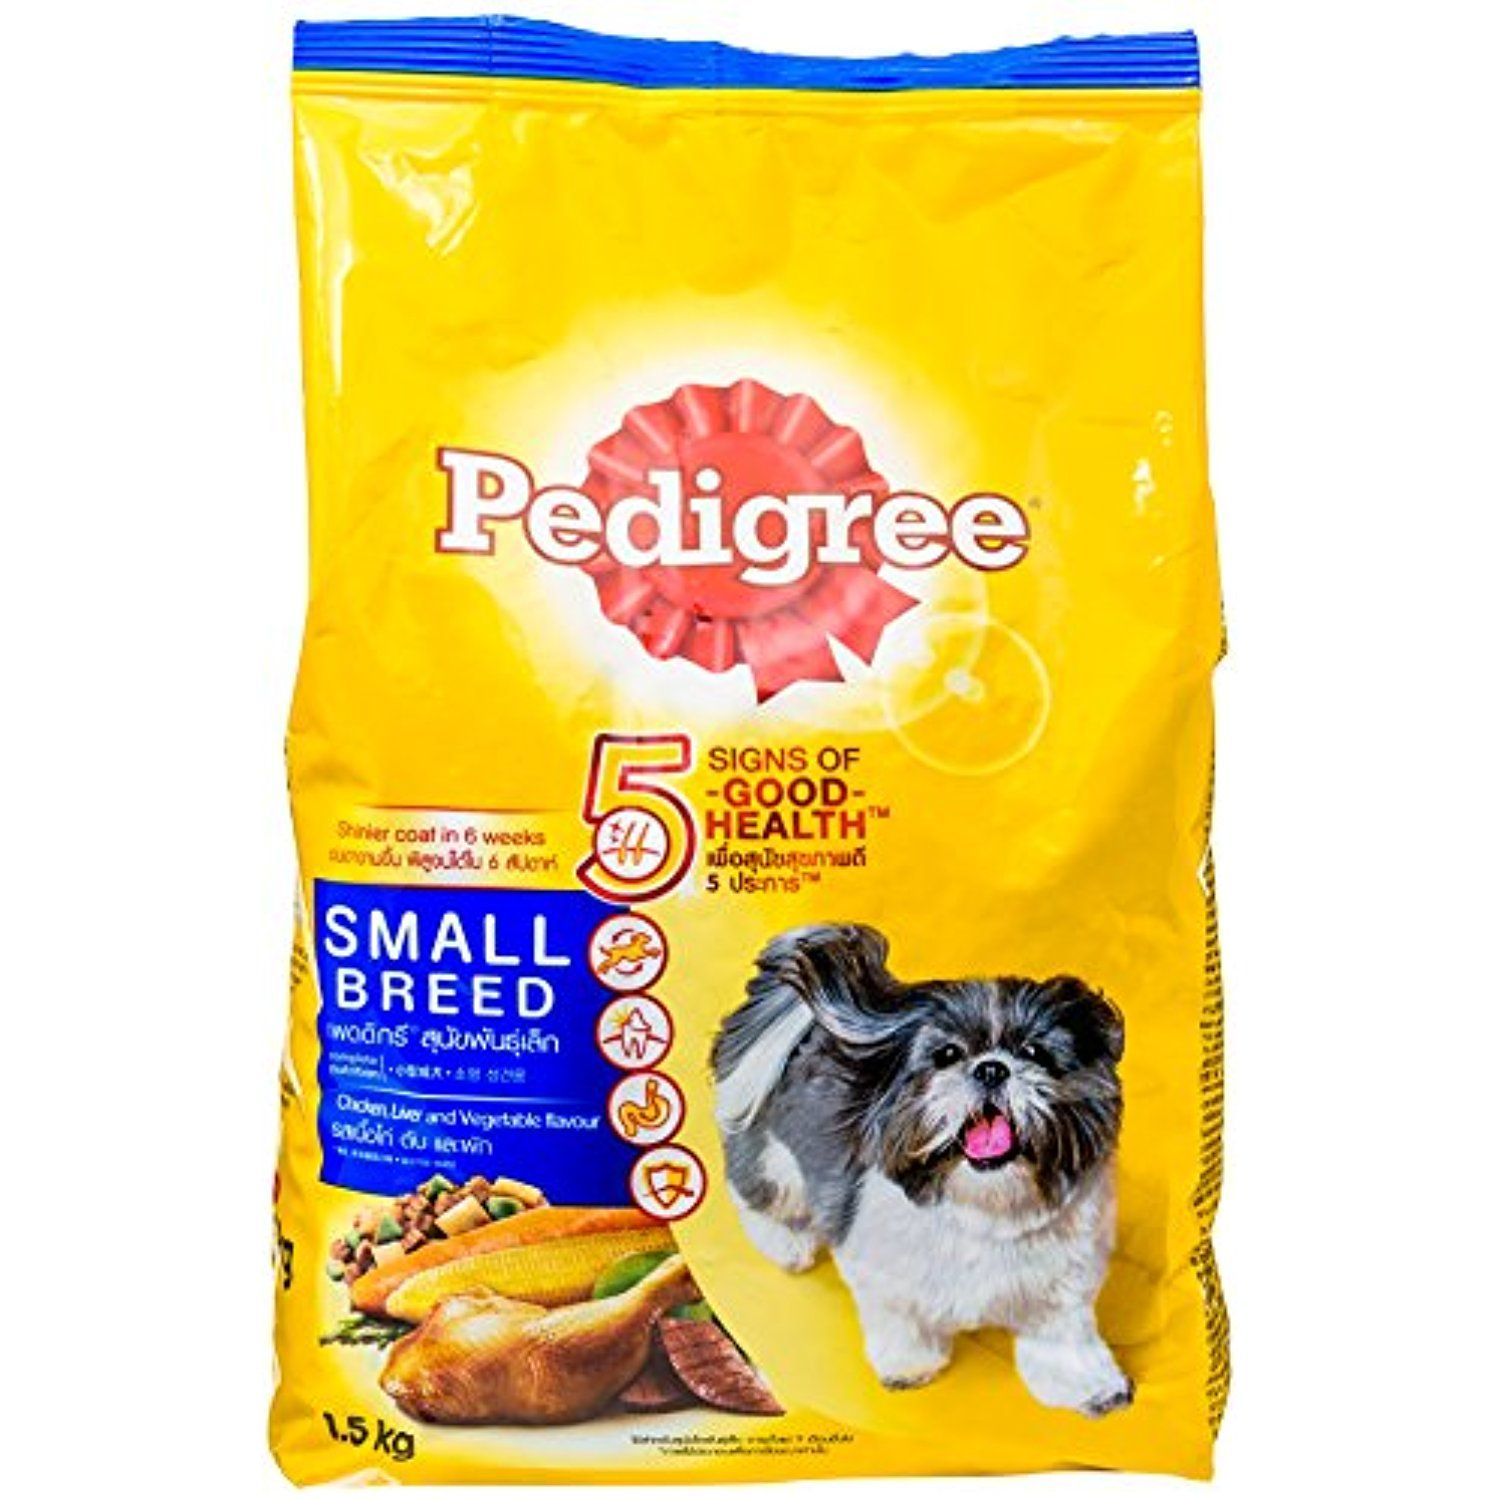 Pedigree Small Breed 15 Kg Chicken Liver Vegetables Please Be